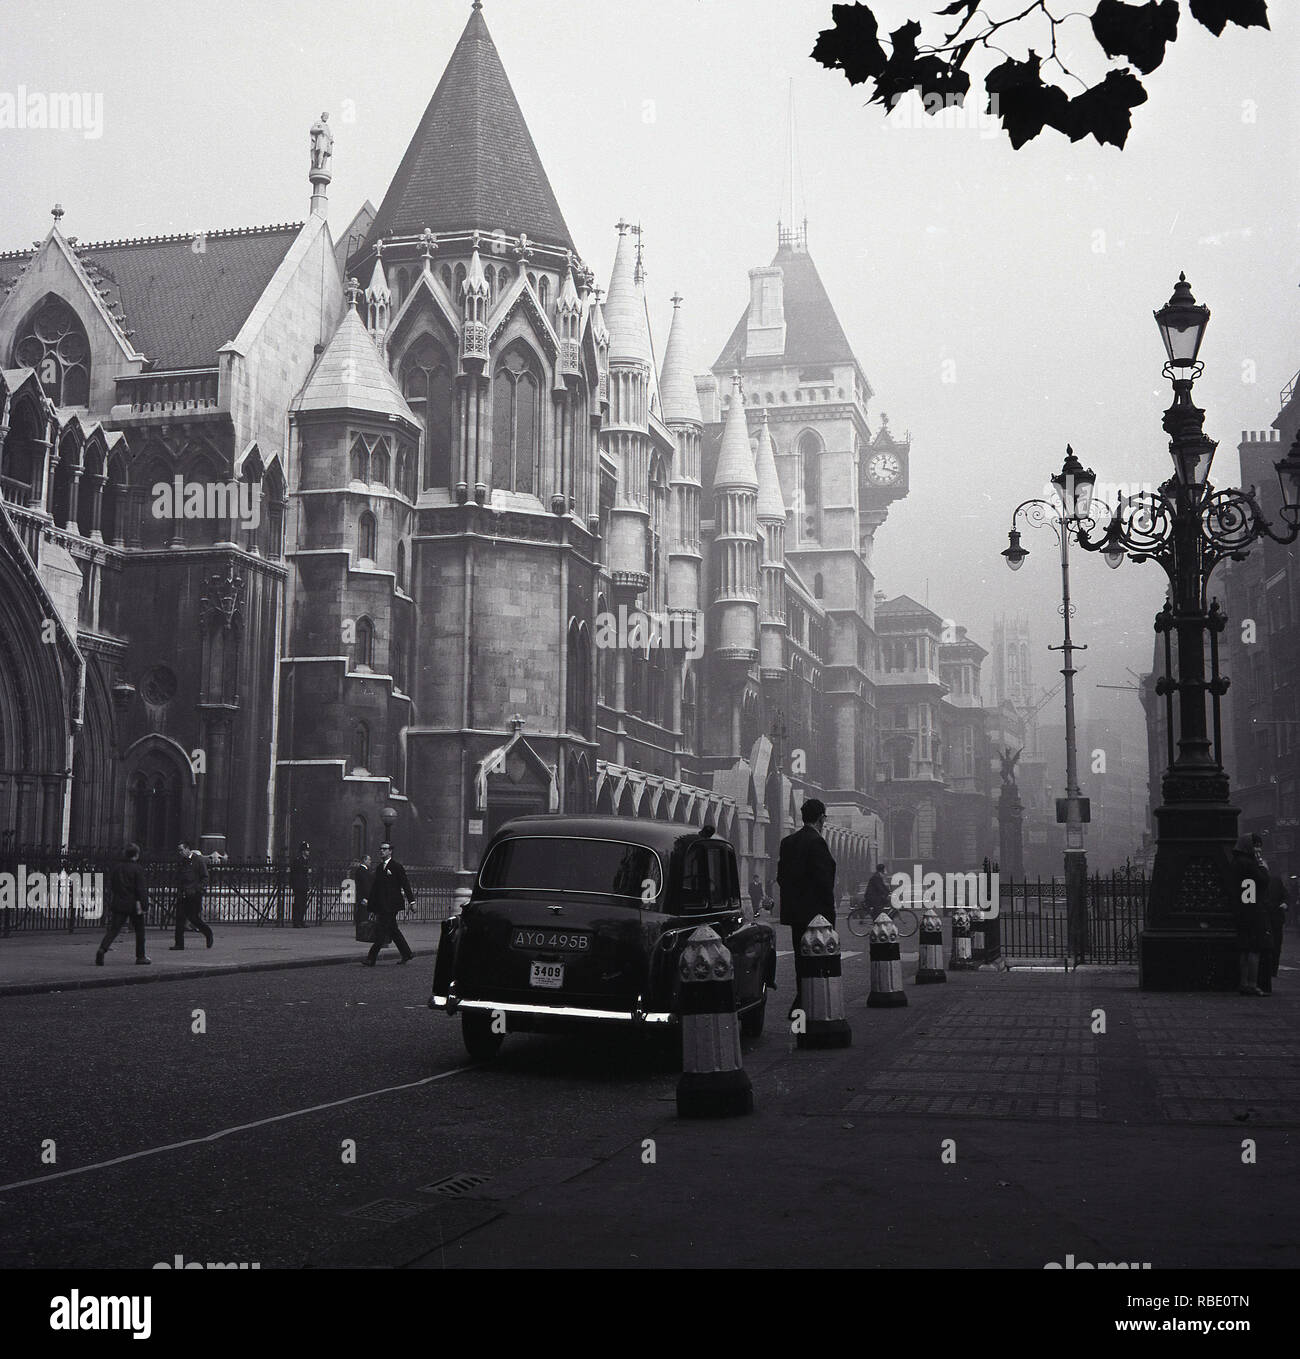 1965, inns of court, London Taxi, London, England, UK - Stock Image